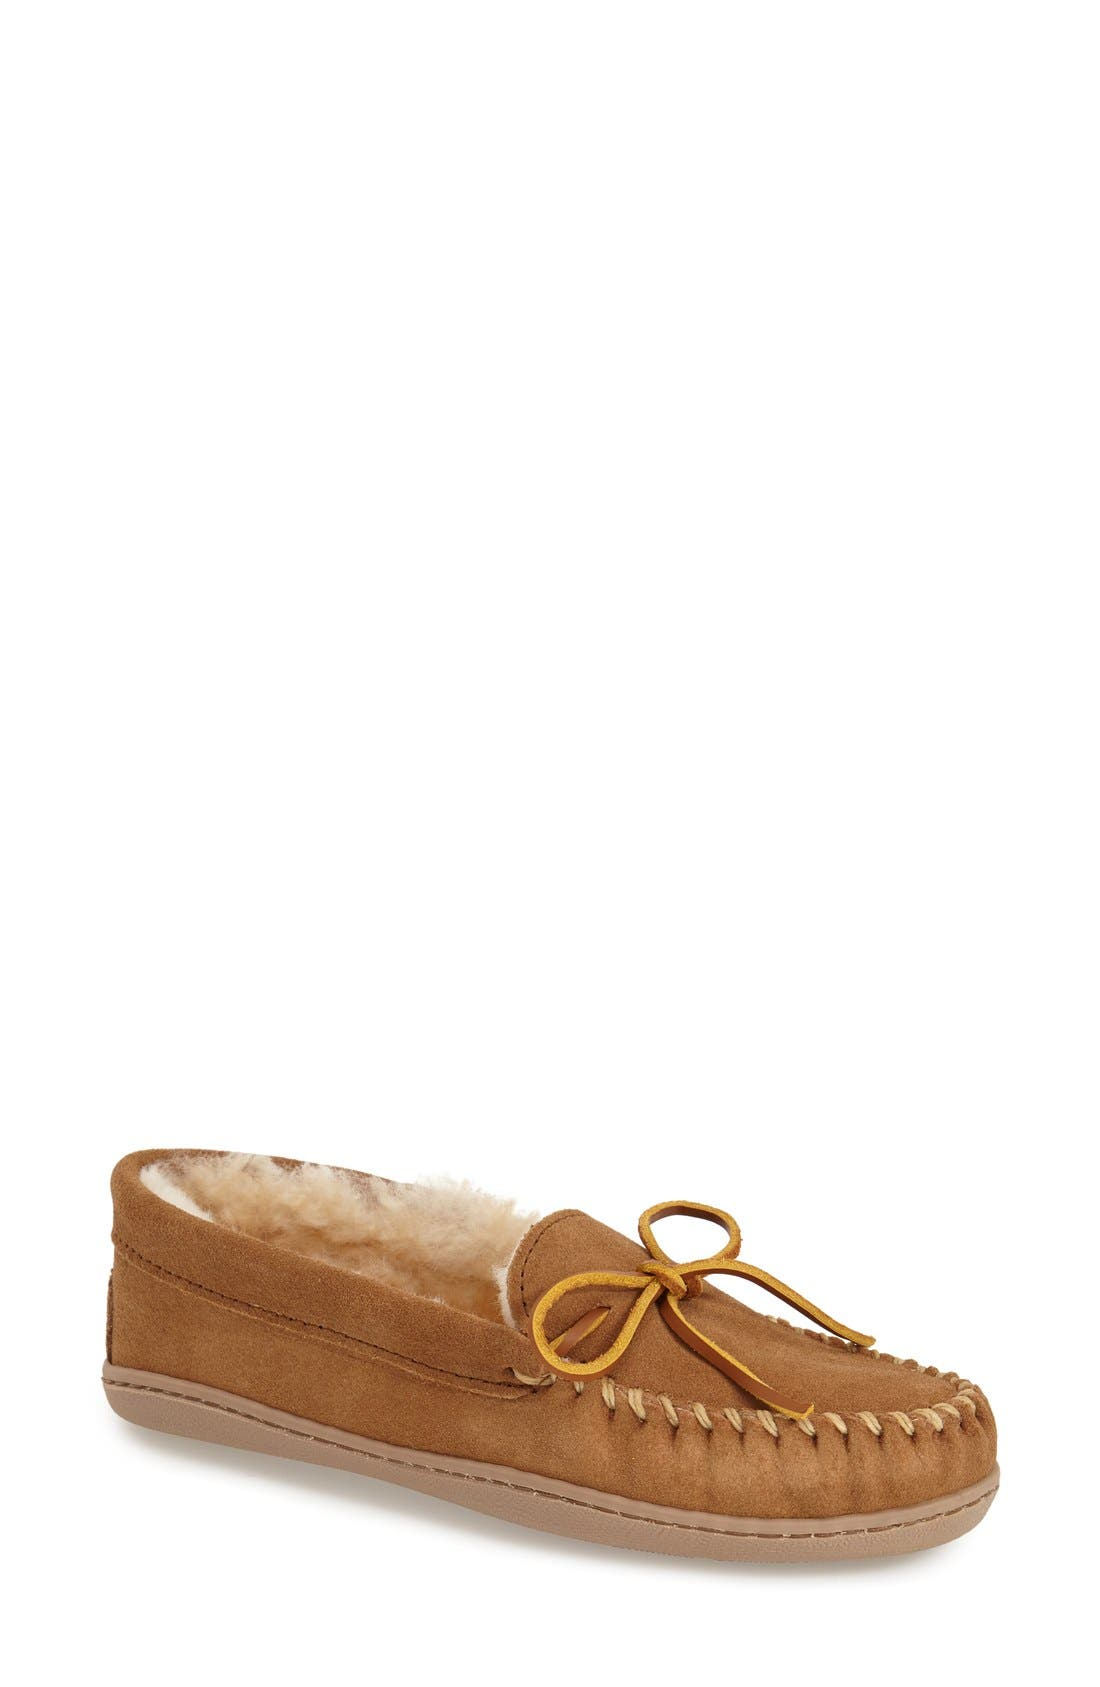 MINNETONKA Sheepskin Hard Sole Moccasin Slipper, Main, color, TAN SUEDE